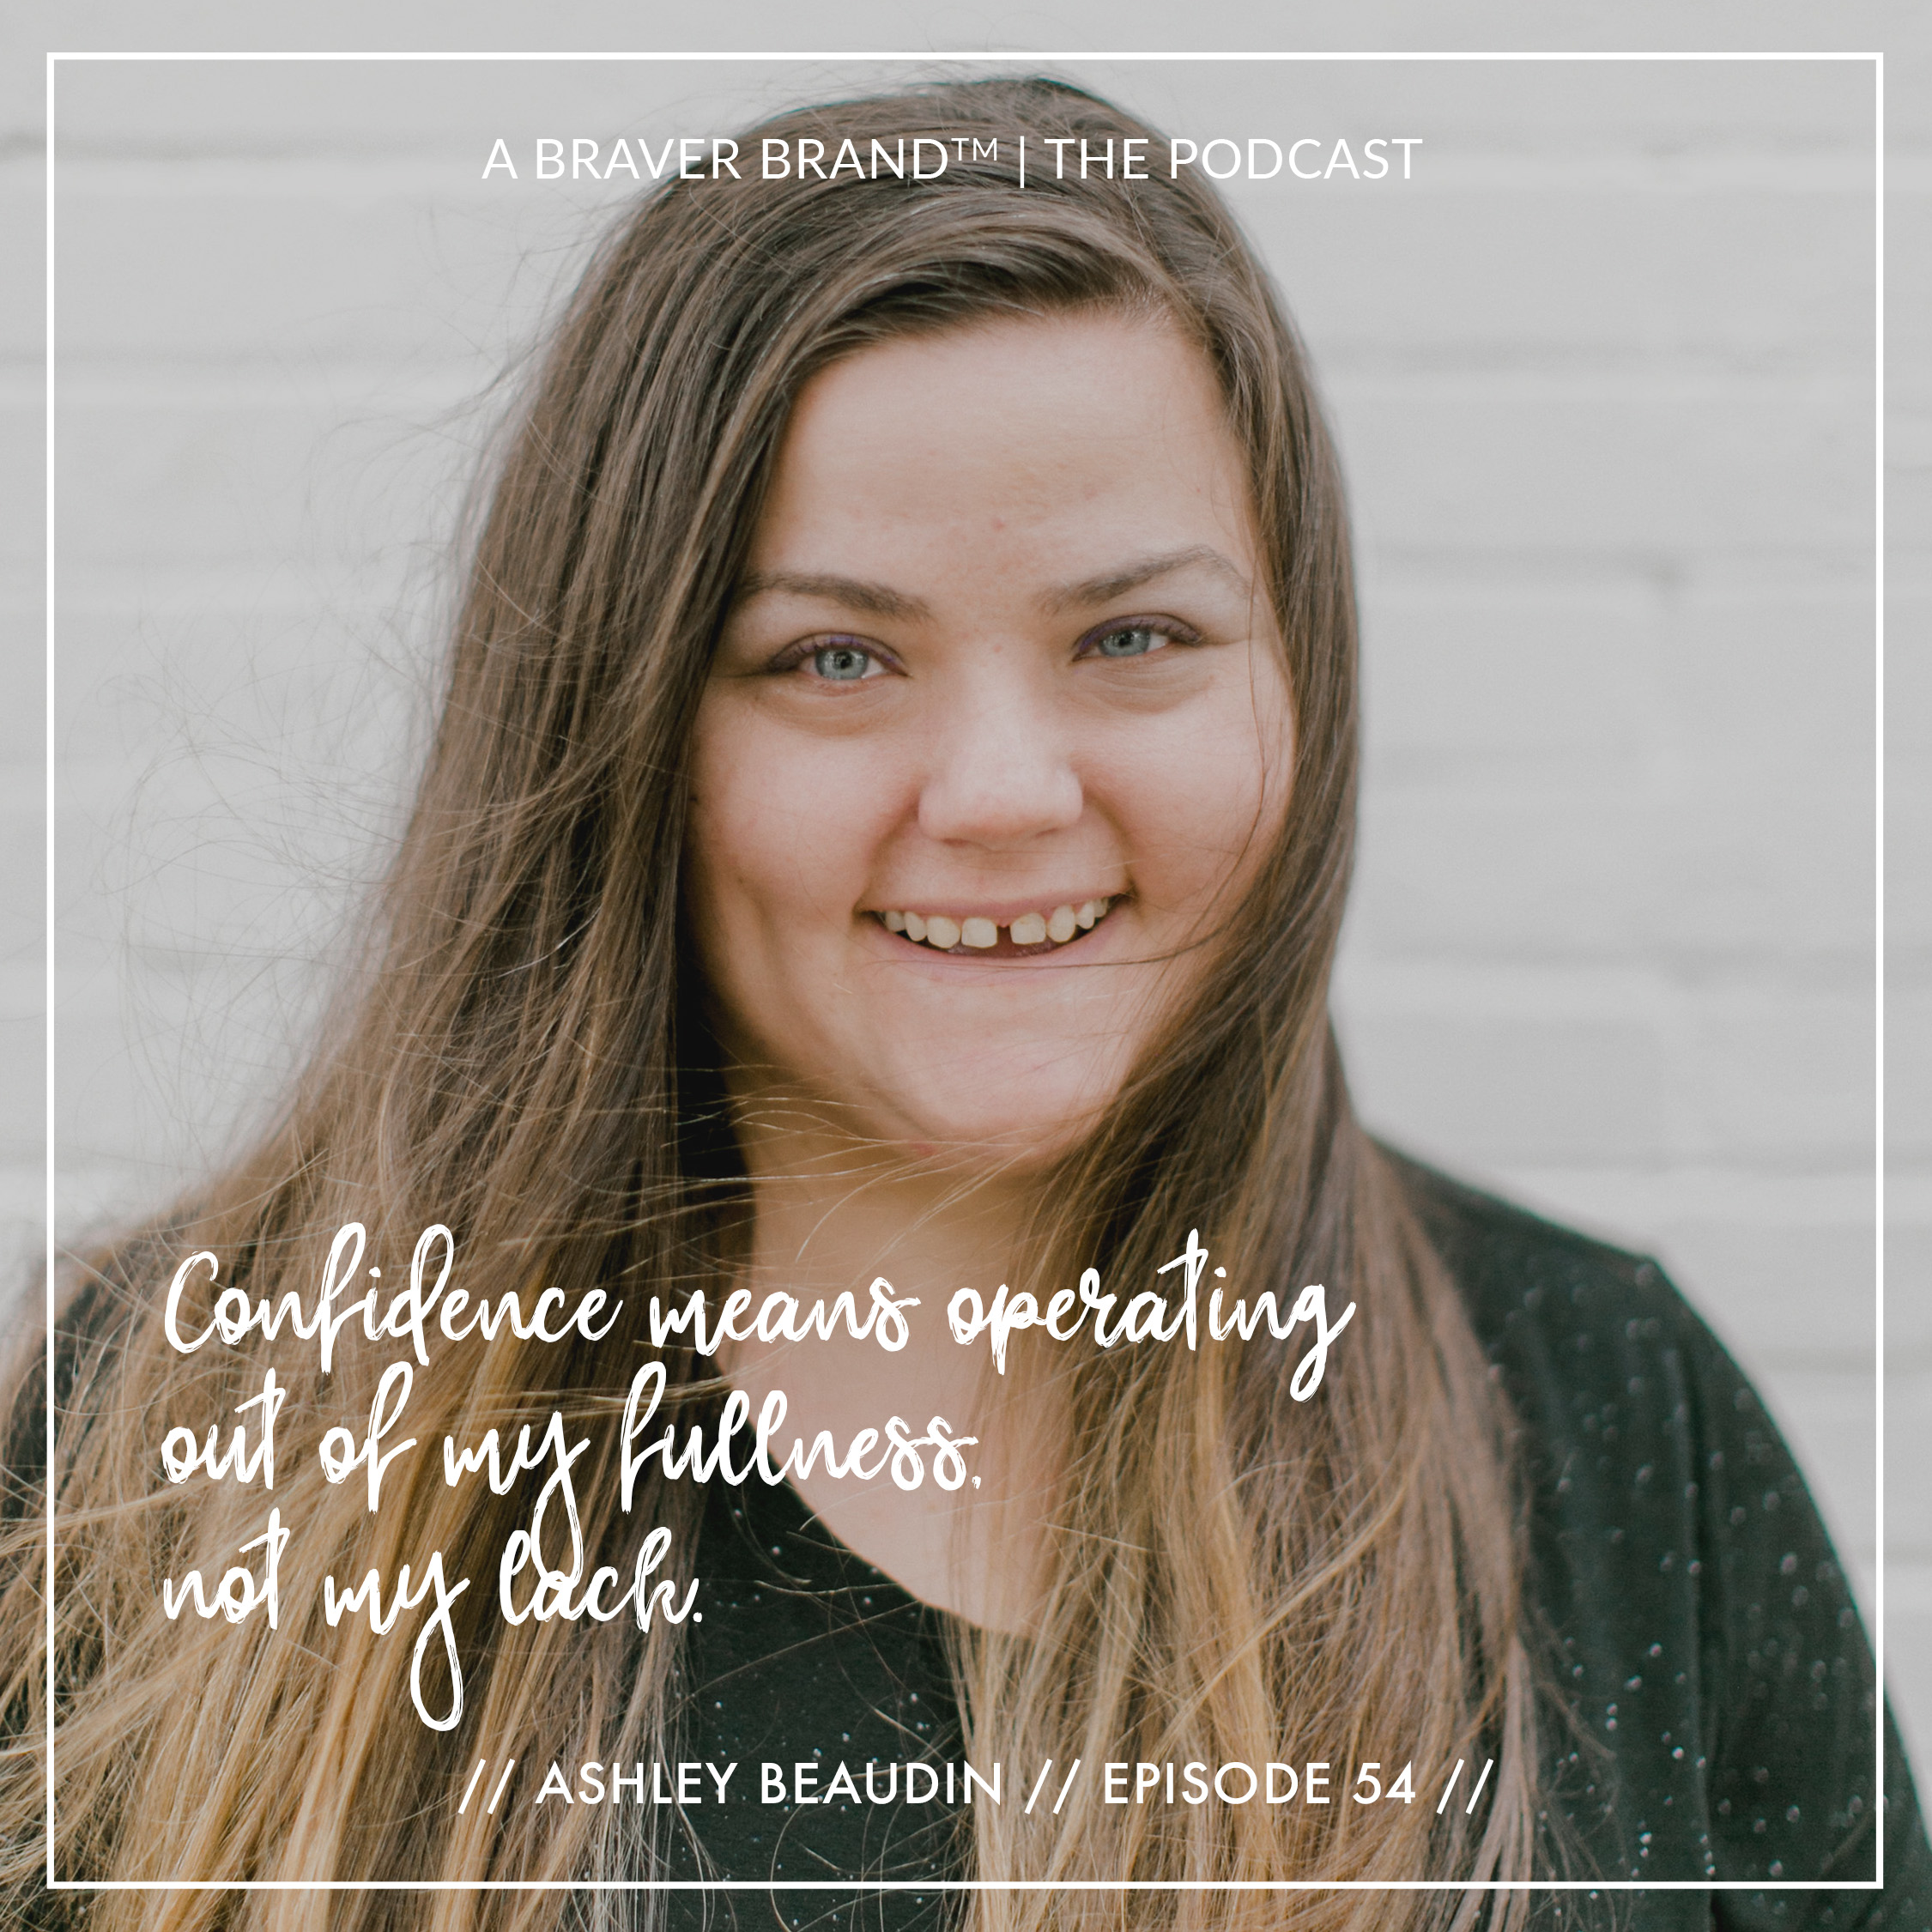 Ashley Beaudin from The Imperfect Boss on Turning Your Mission Into A Movement | A Braver Brand with Kate K. McCarthy